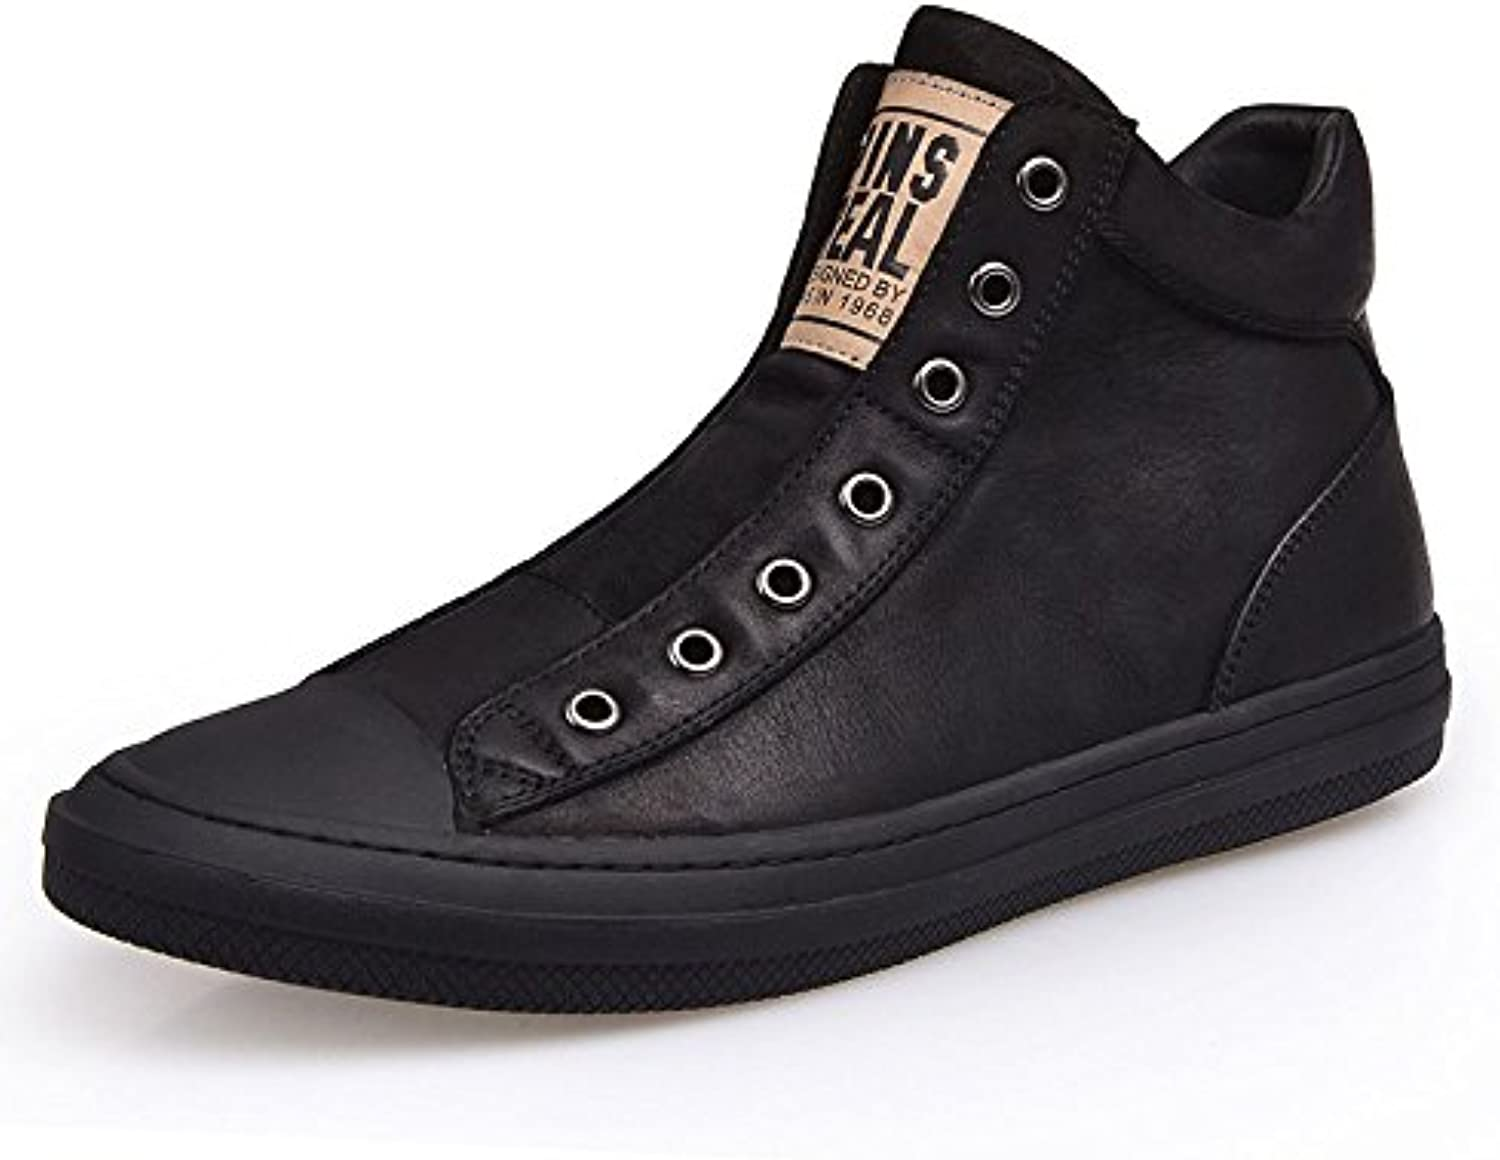 MUYII Herren Leder Turnschuhe Mode High Top Skateboard Schuhe Slip on Casual Stiefel Trainer Casual Street Sport